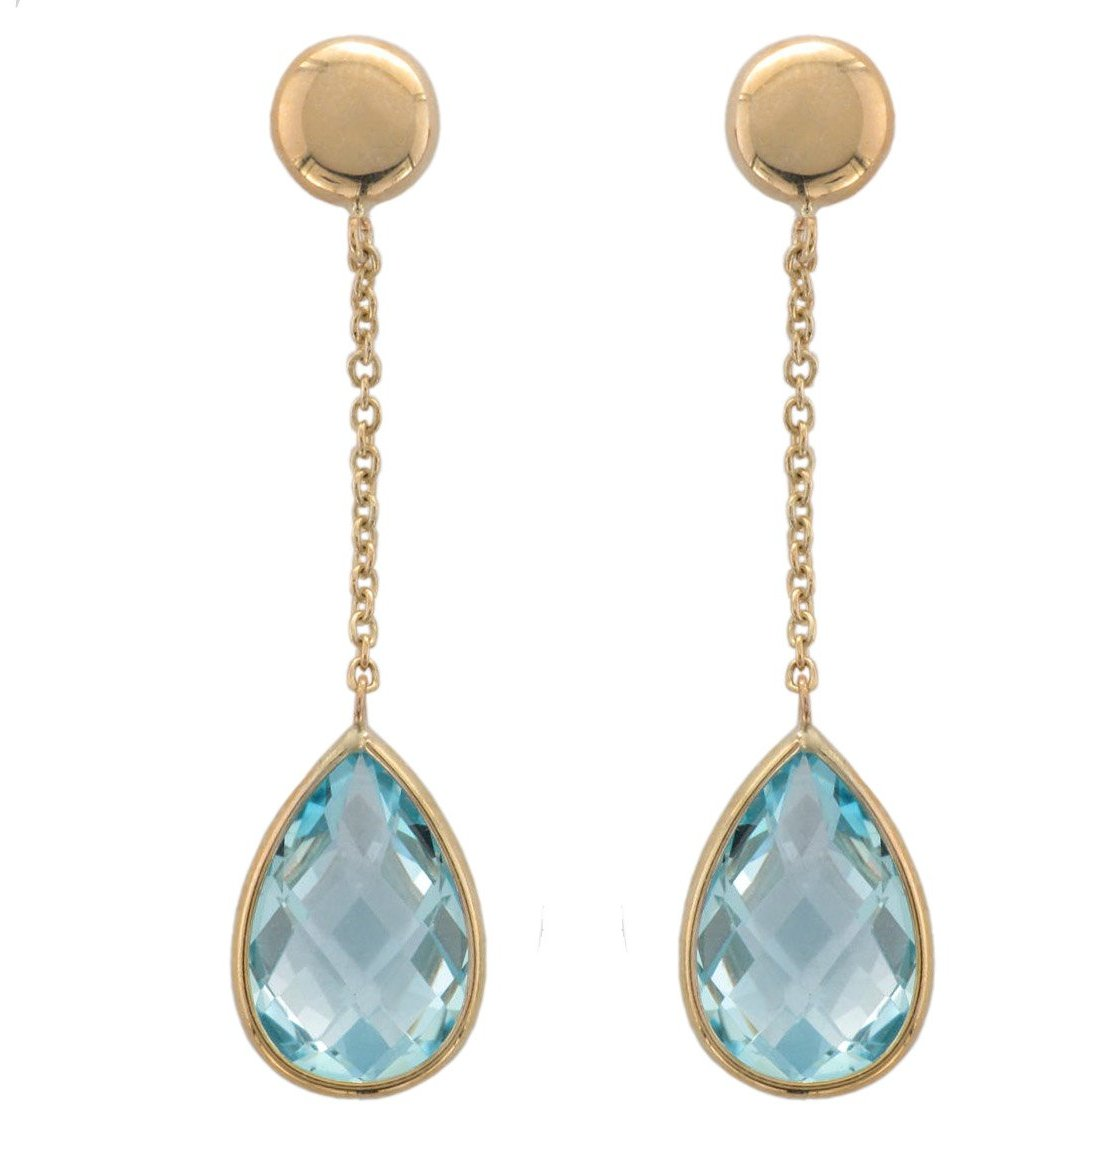 9ct Yellow Gold Blue Topaz Drop Earrings - Andrew Scott